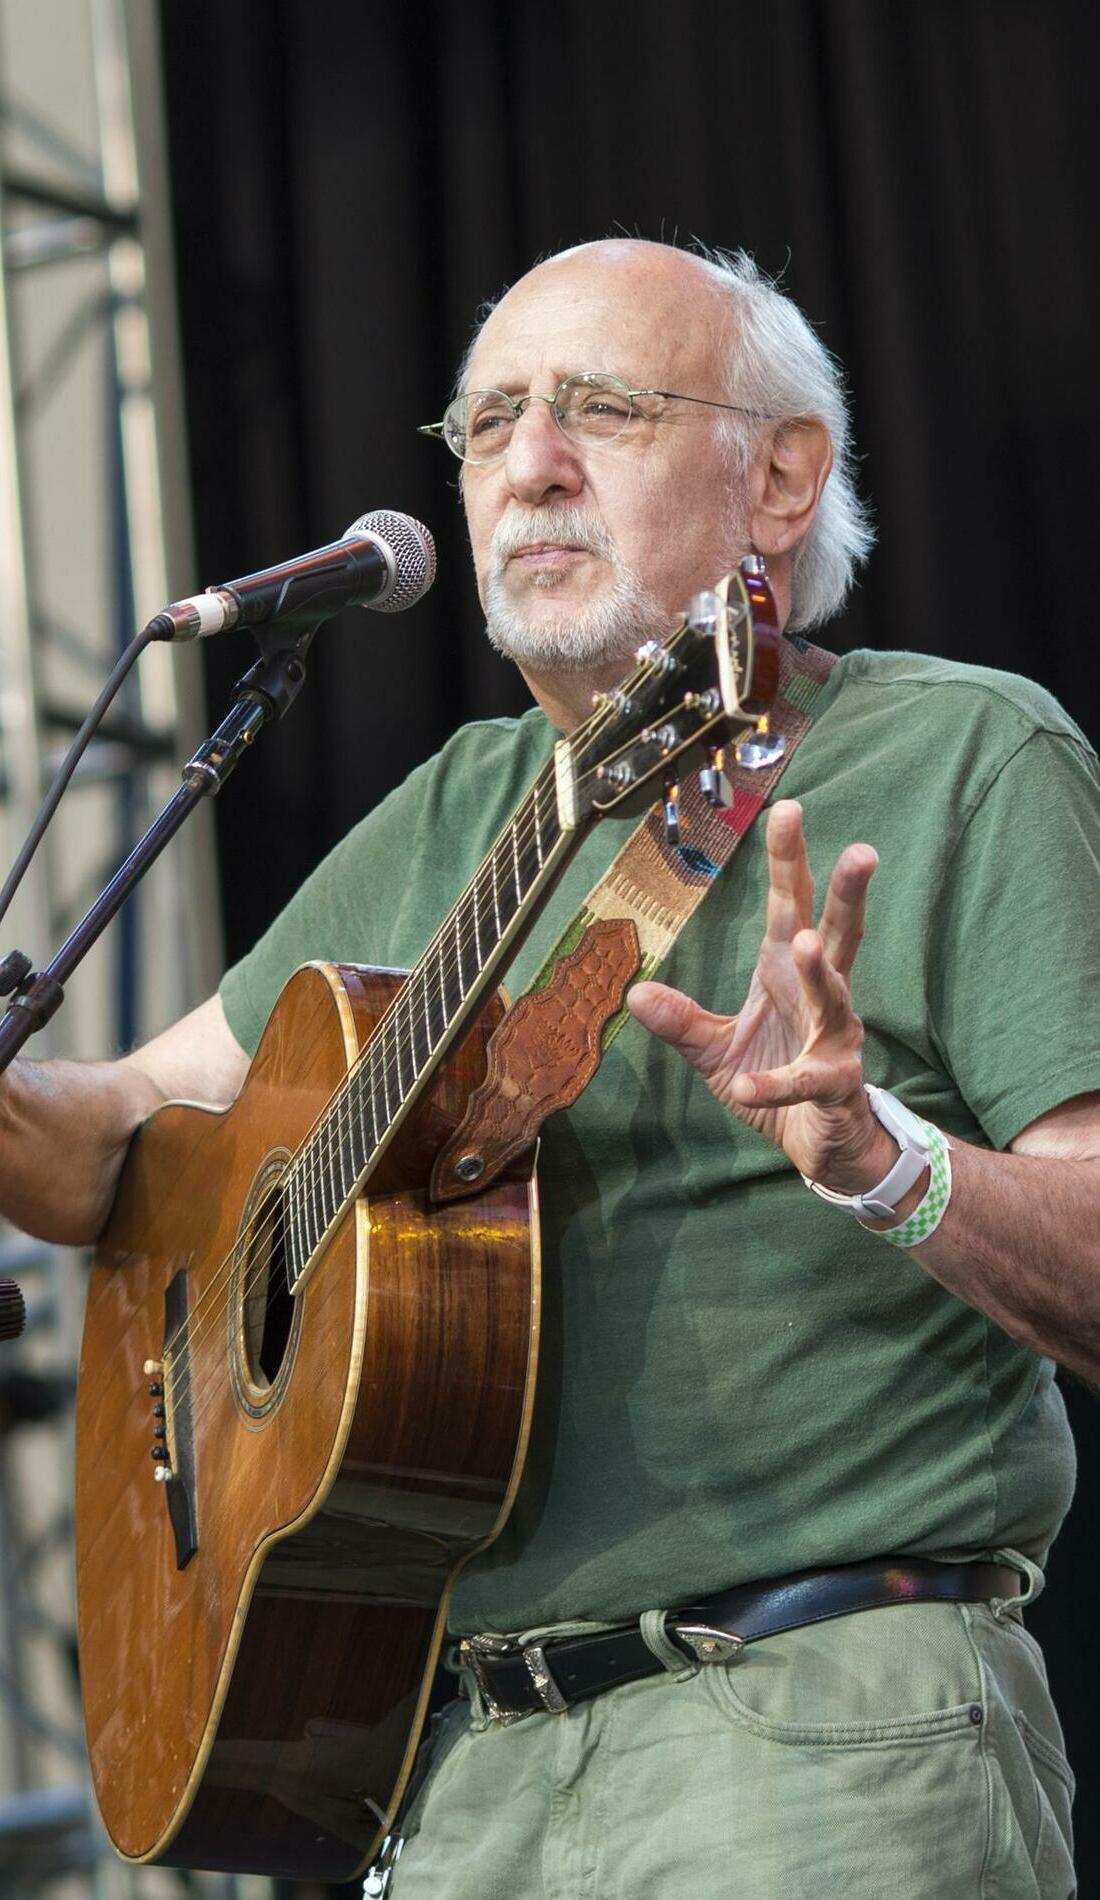 A Peter Yarrow live event